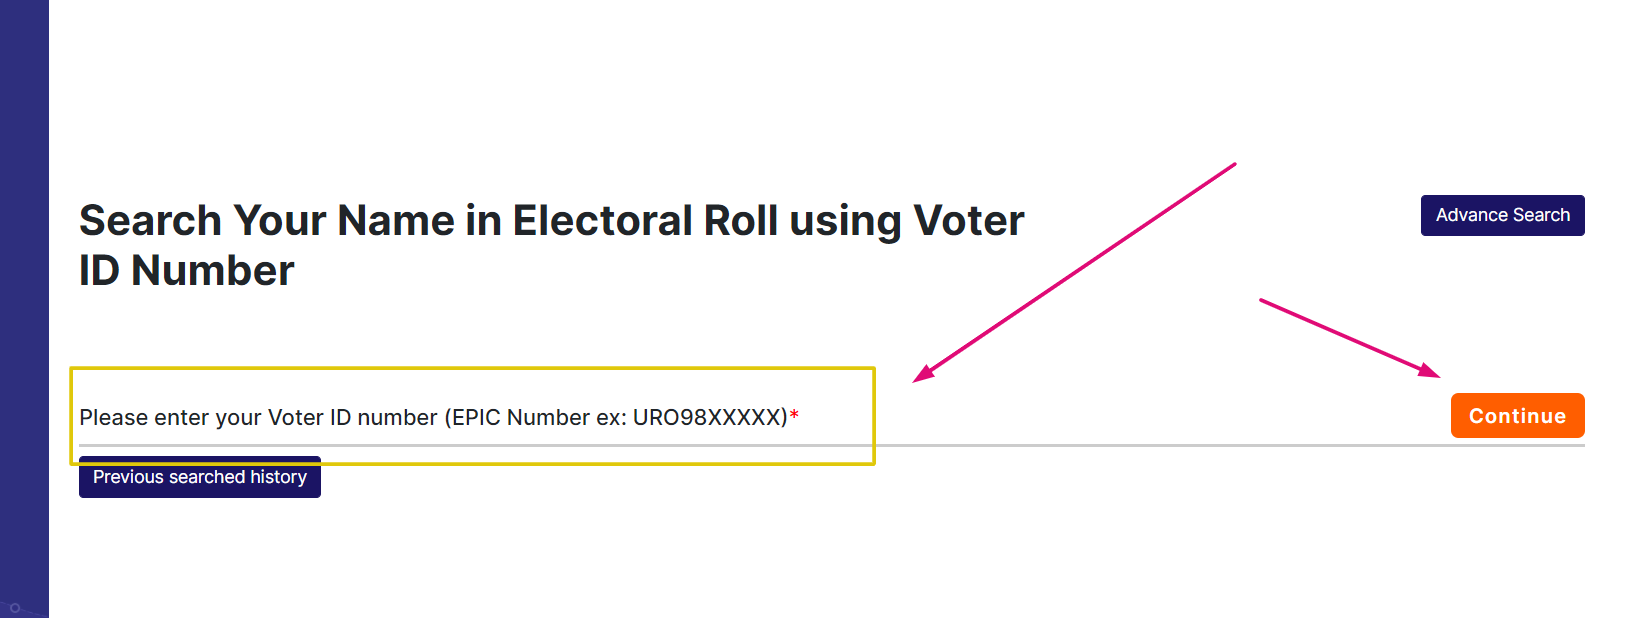 SERACH-ELECTORAL-ROLL-USING-VOTER-ID